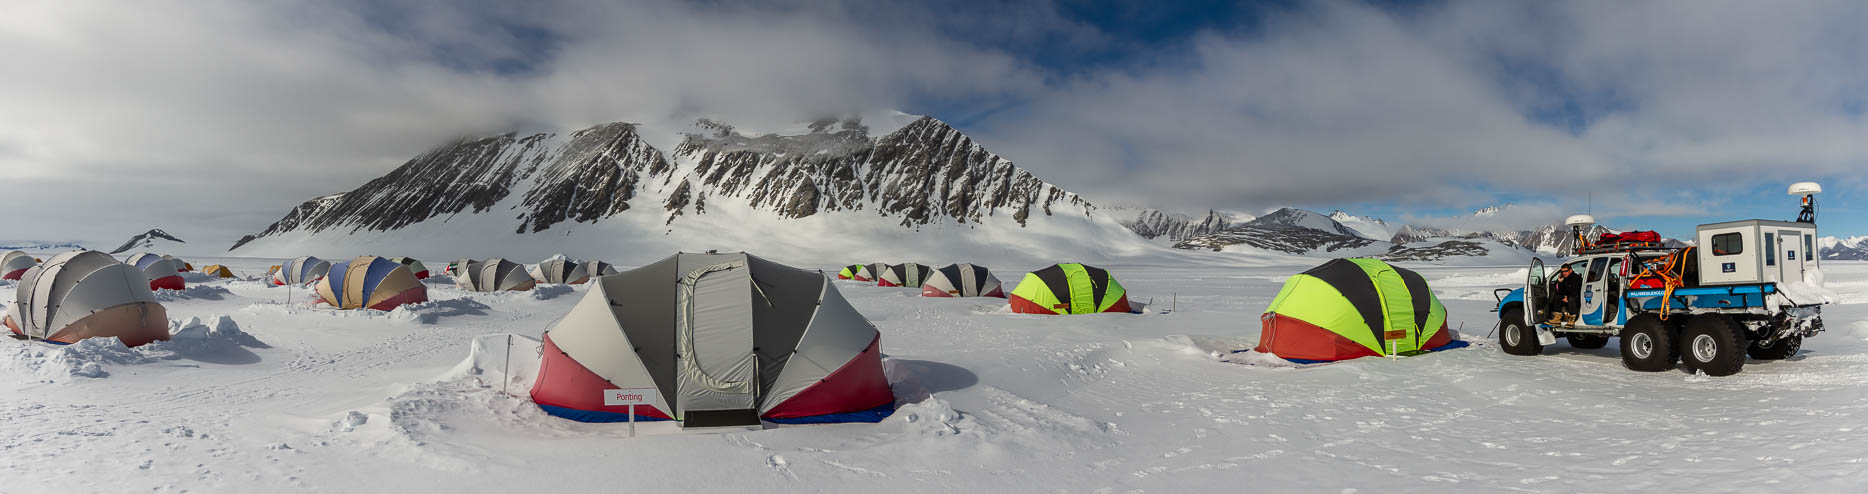 Union Glacier Camp - Antarctica